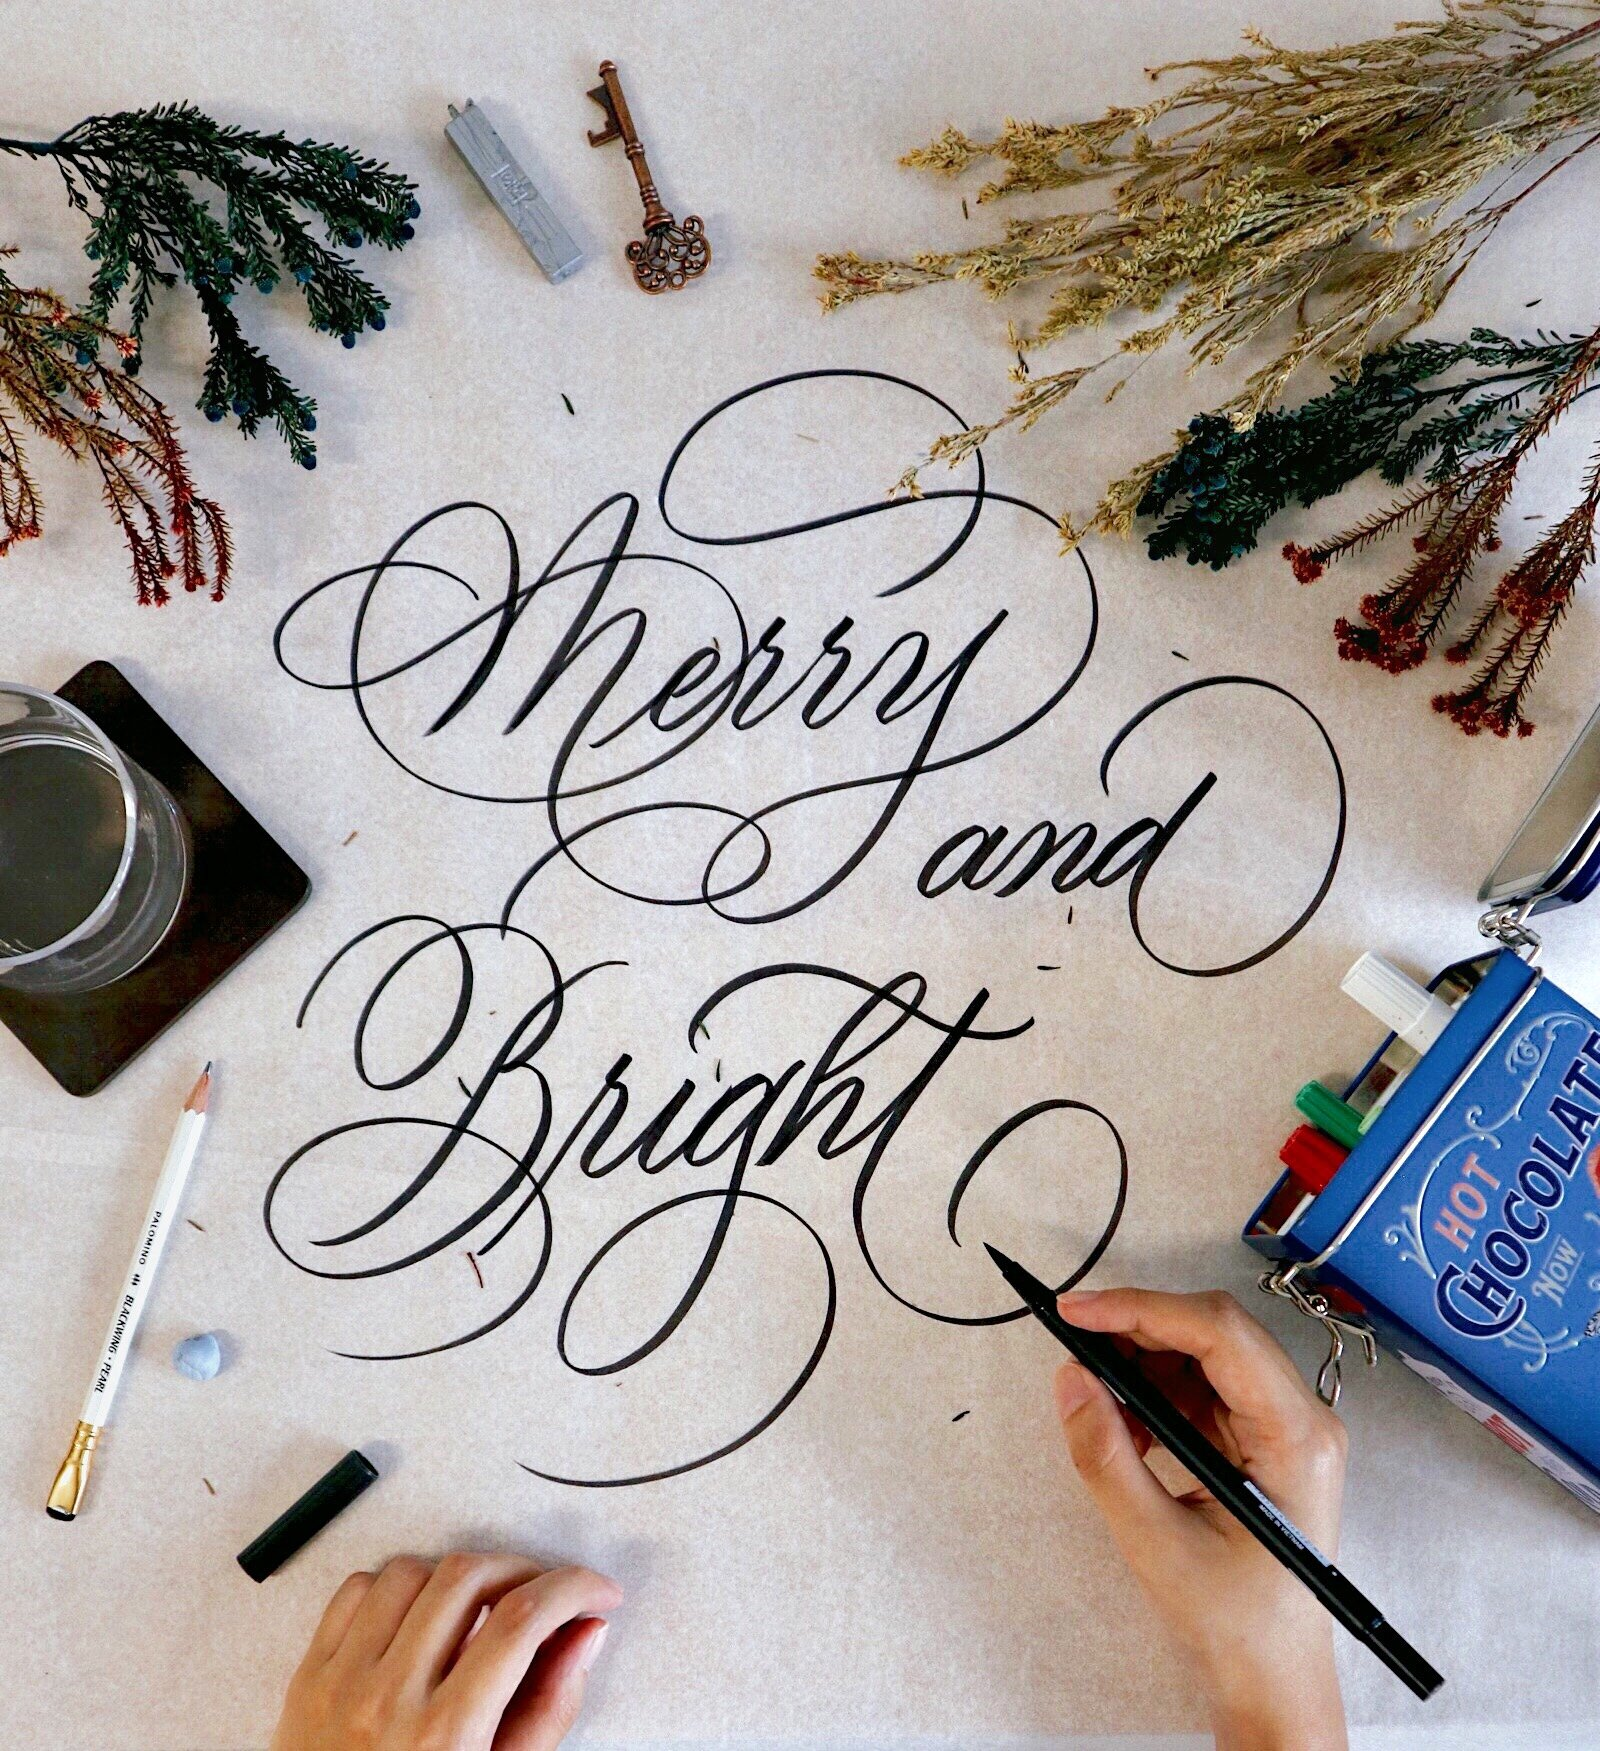 Brush Calligraphy Workshop - In this 2-hour workshop, join me in tapping into your artistic and creative self where we get to express our individuality and style. You will learn the principle skills of calligraphy, create beautiful letterforms and by the end of the lesson, have a new-found appreciation for an art form that is greatly grounded in history.